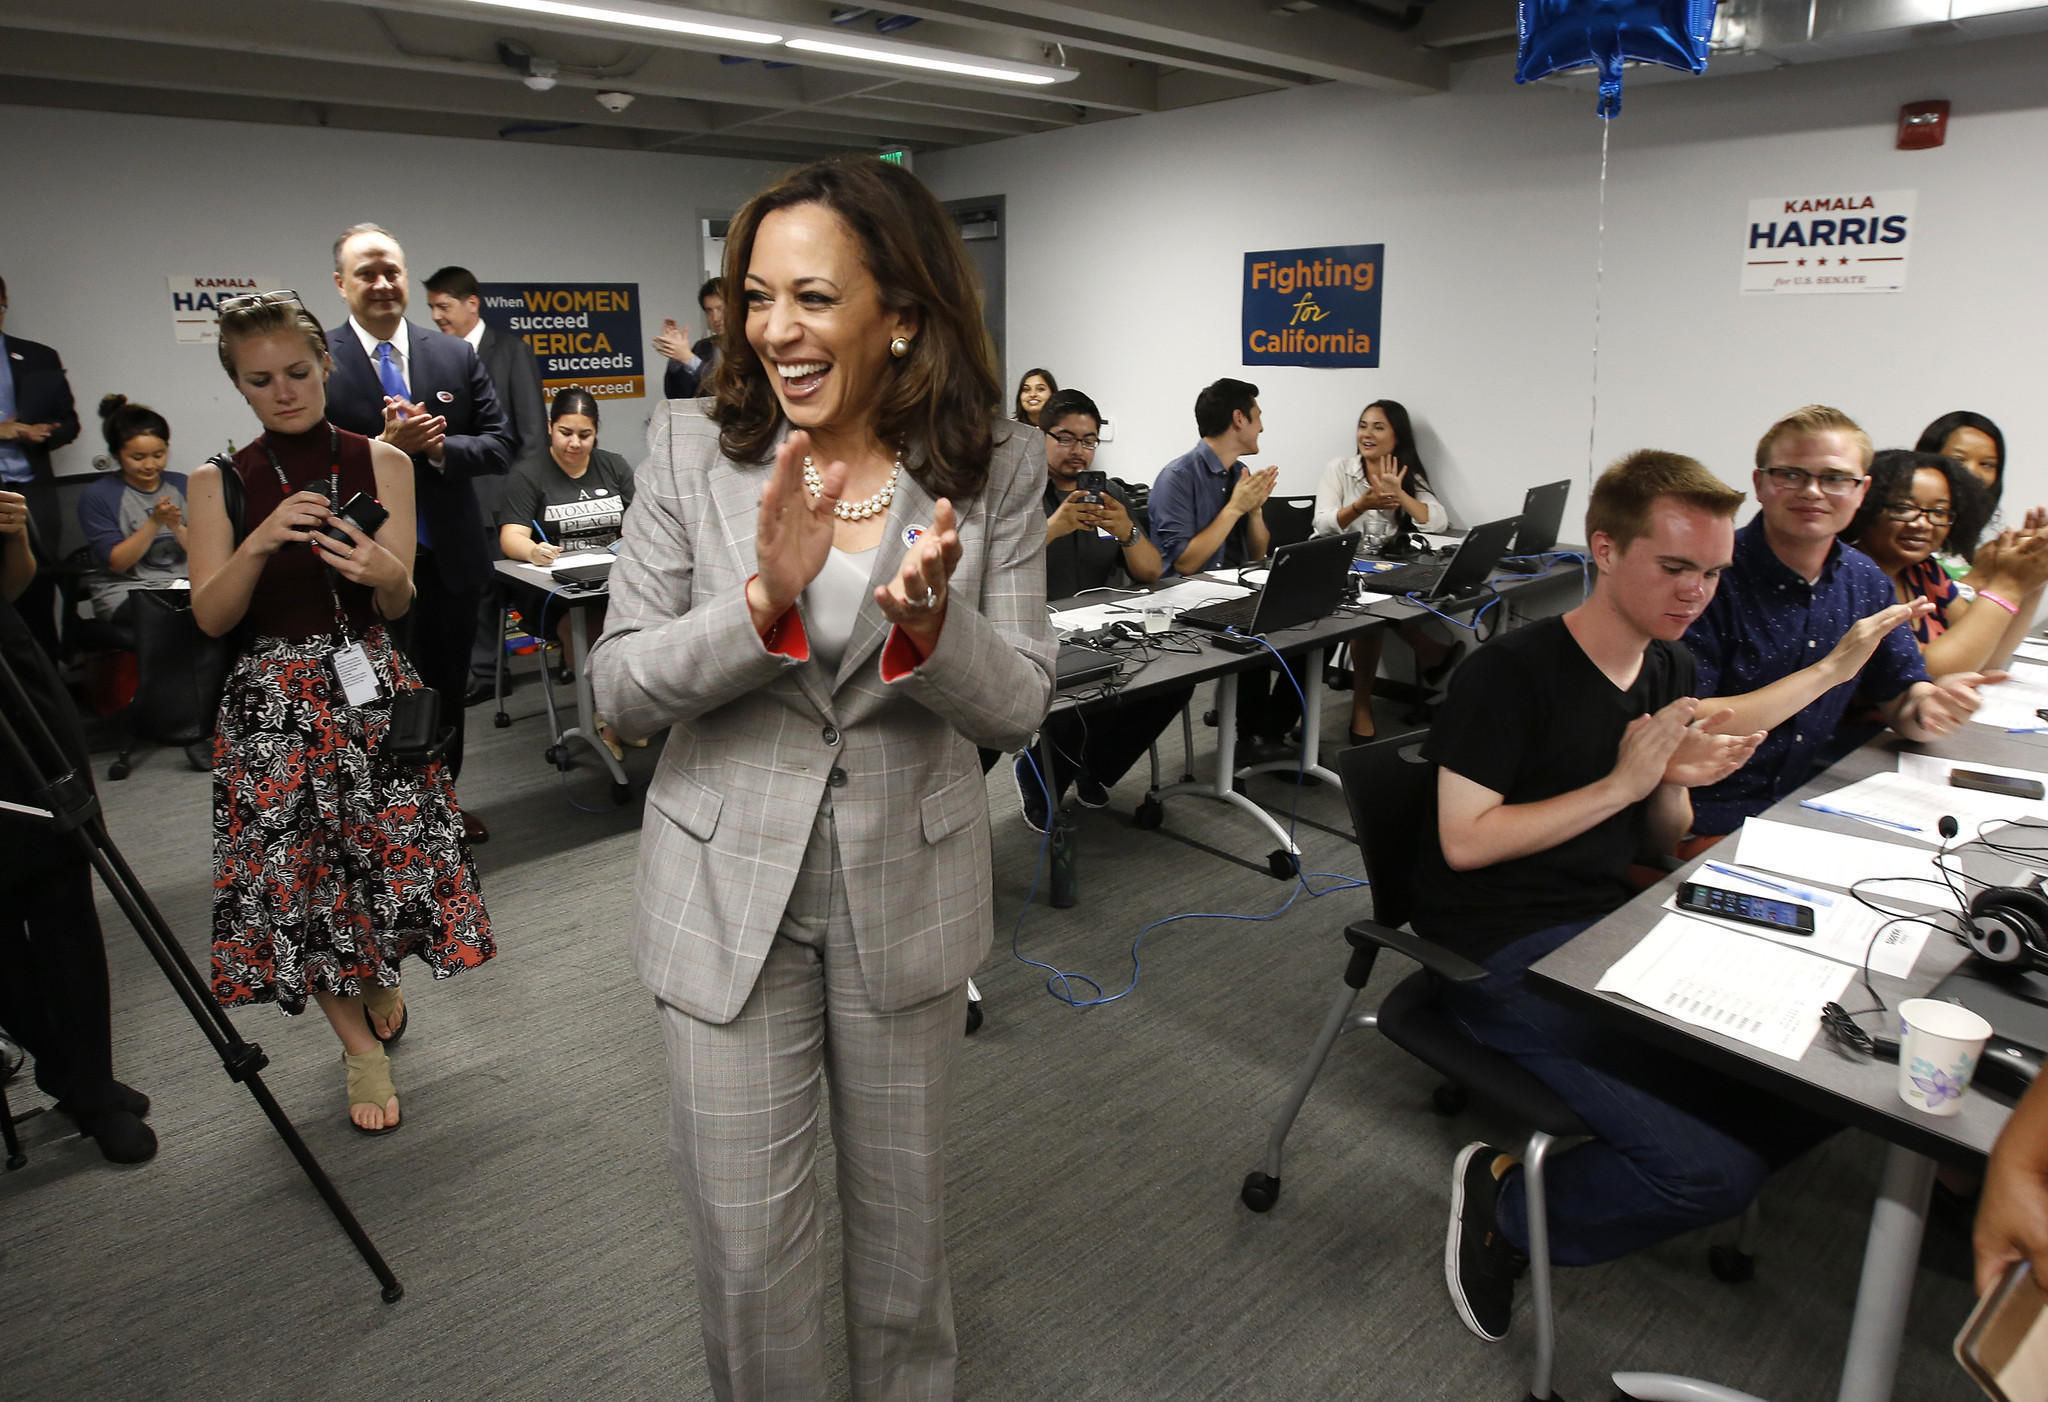 Atty. Gen. Kamala Harris greets supporters in Sacramento on Tuesday, June 7. (Rich Pedroncelli/Associated Press)